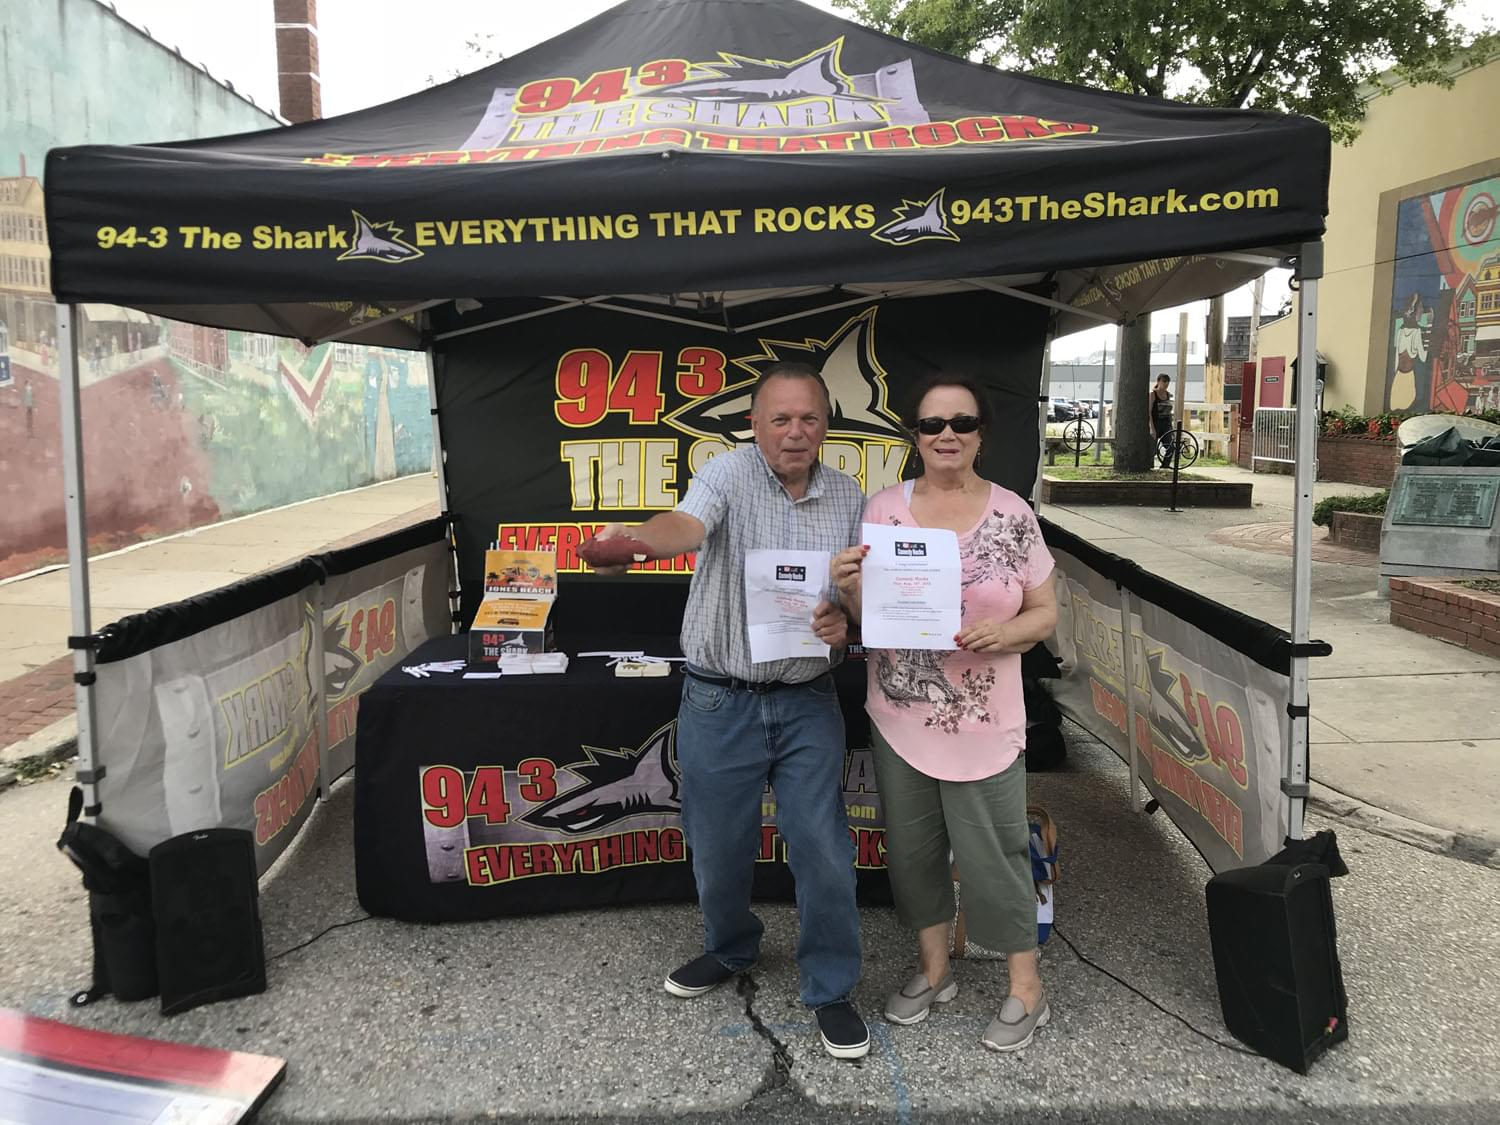 94.3 The Shark at Alive After 5